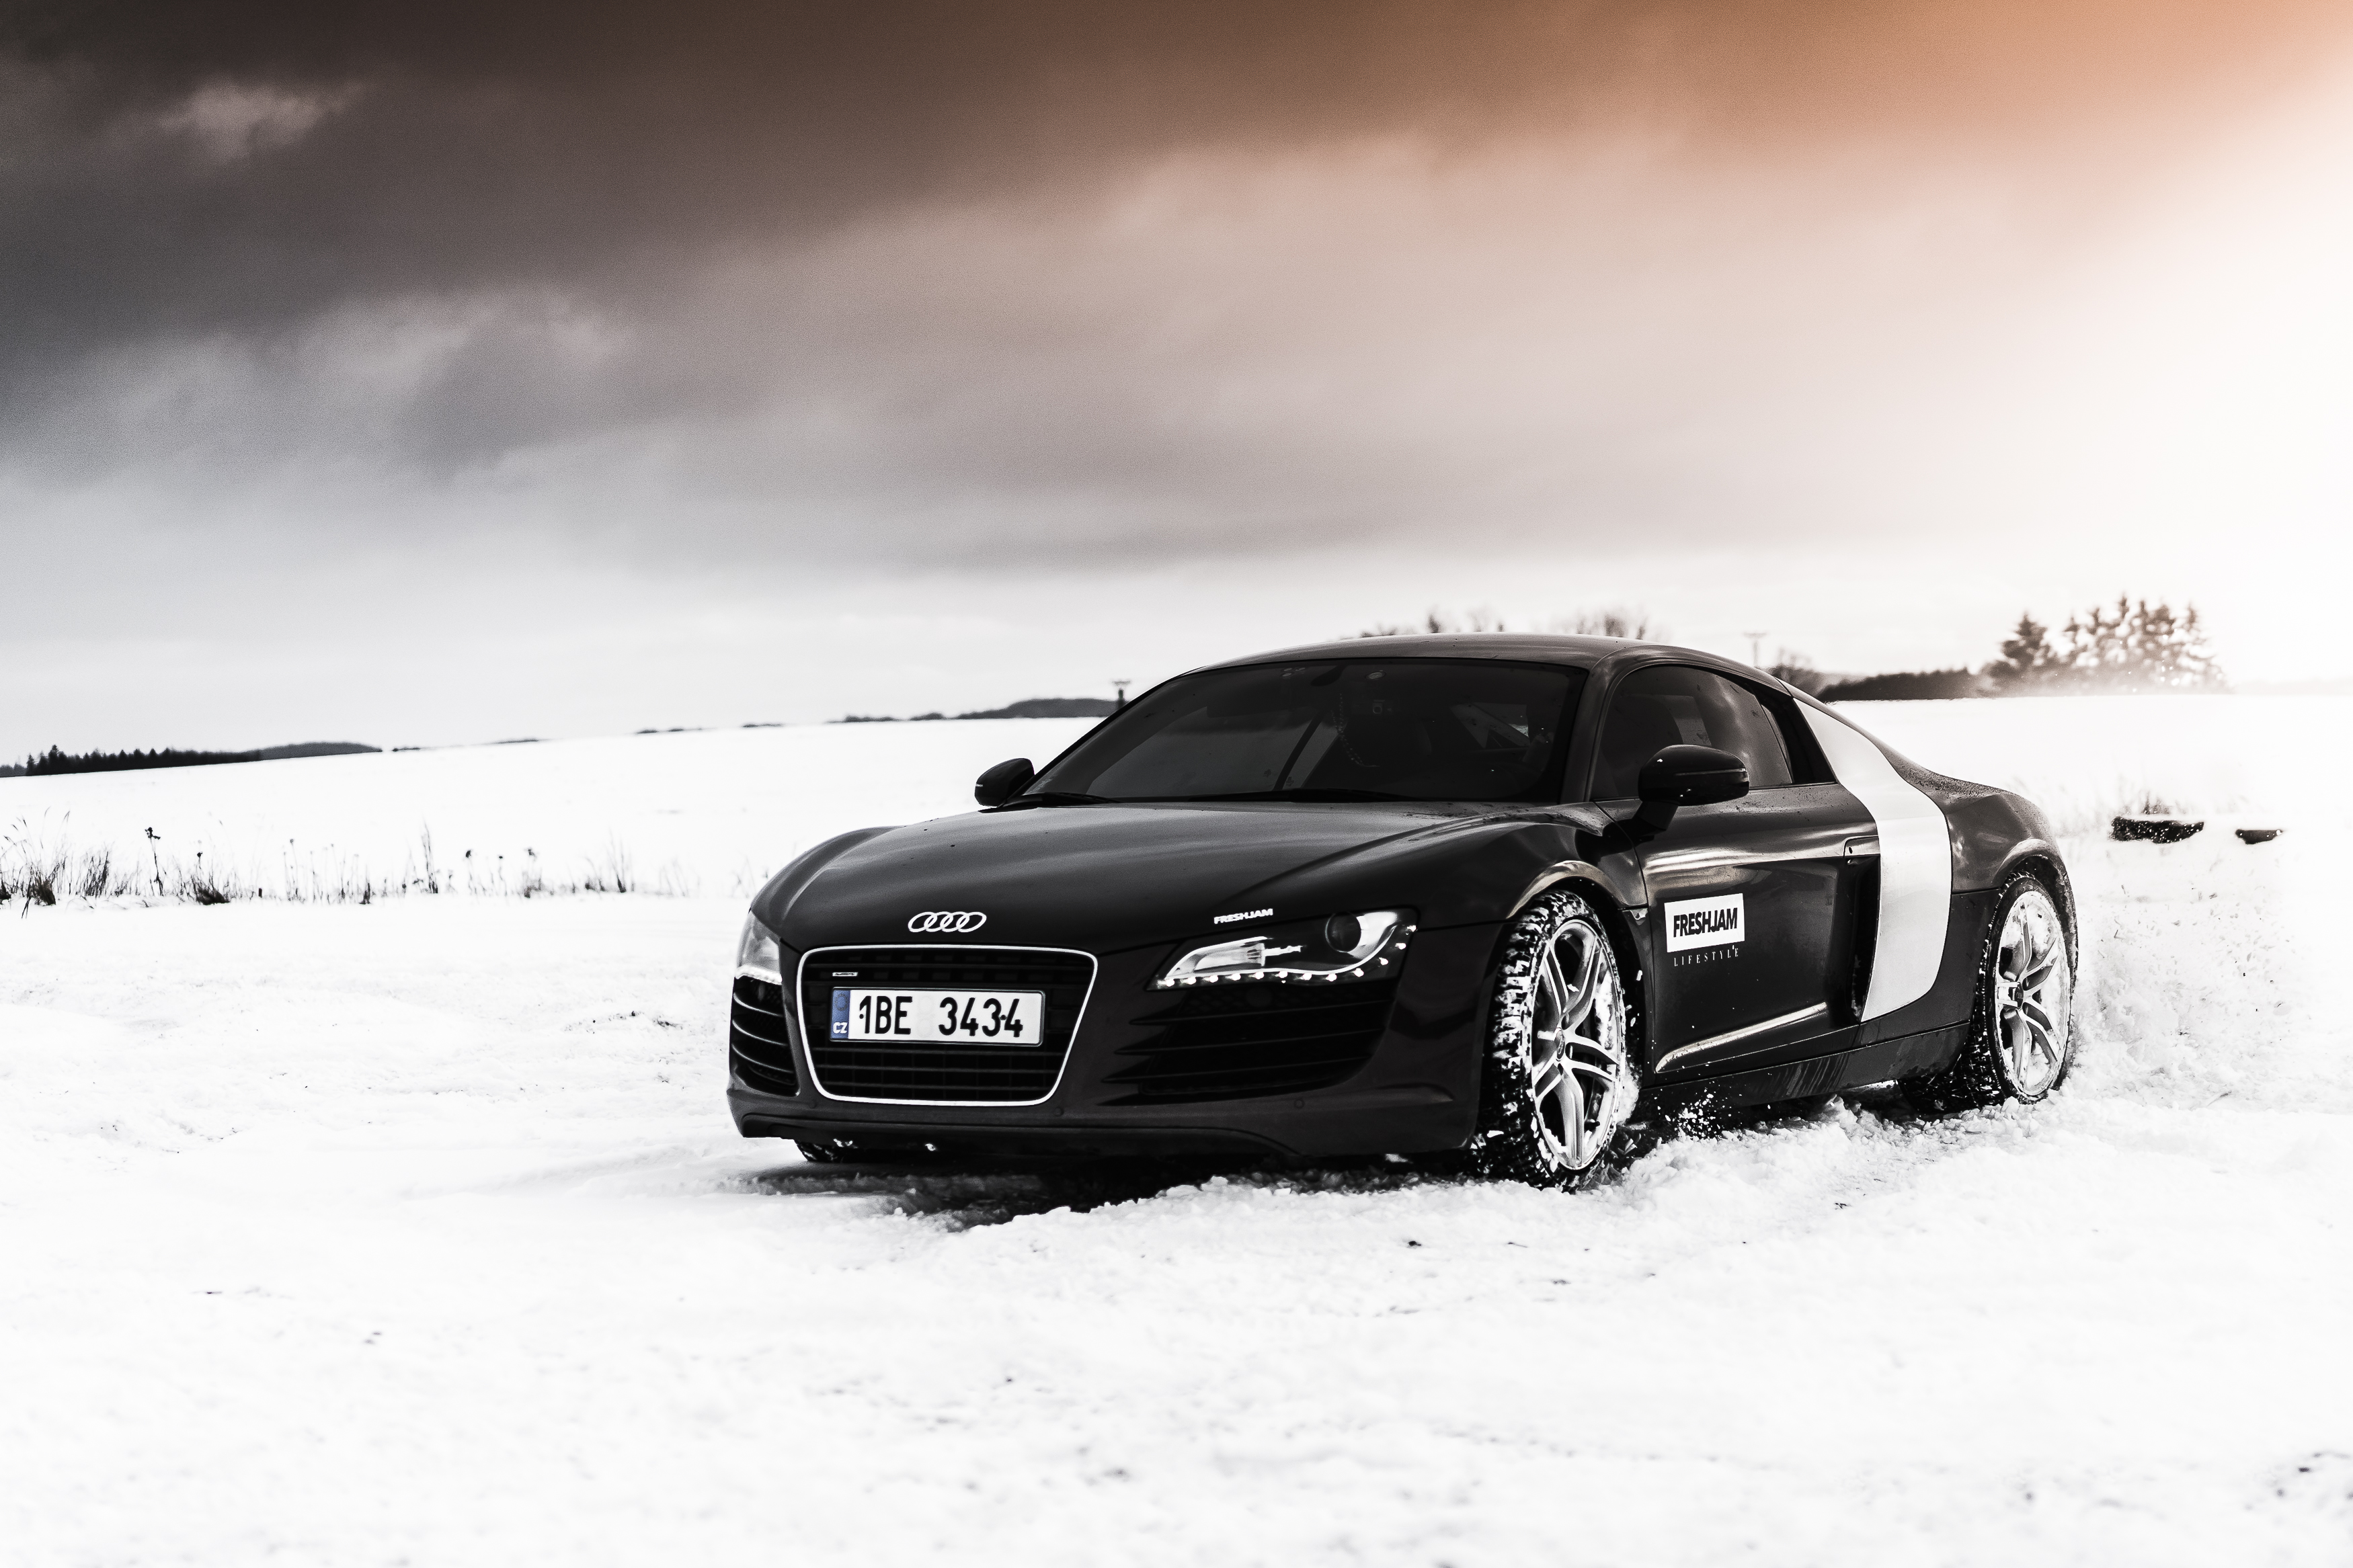 R8 Winter Desktop Wallpaper in Snow